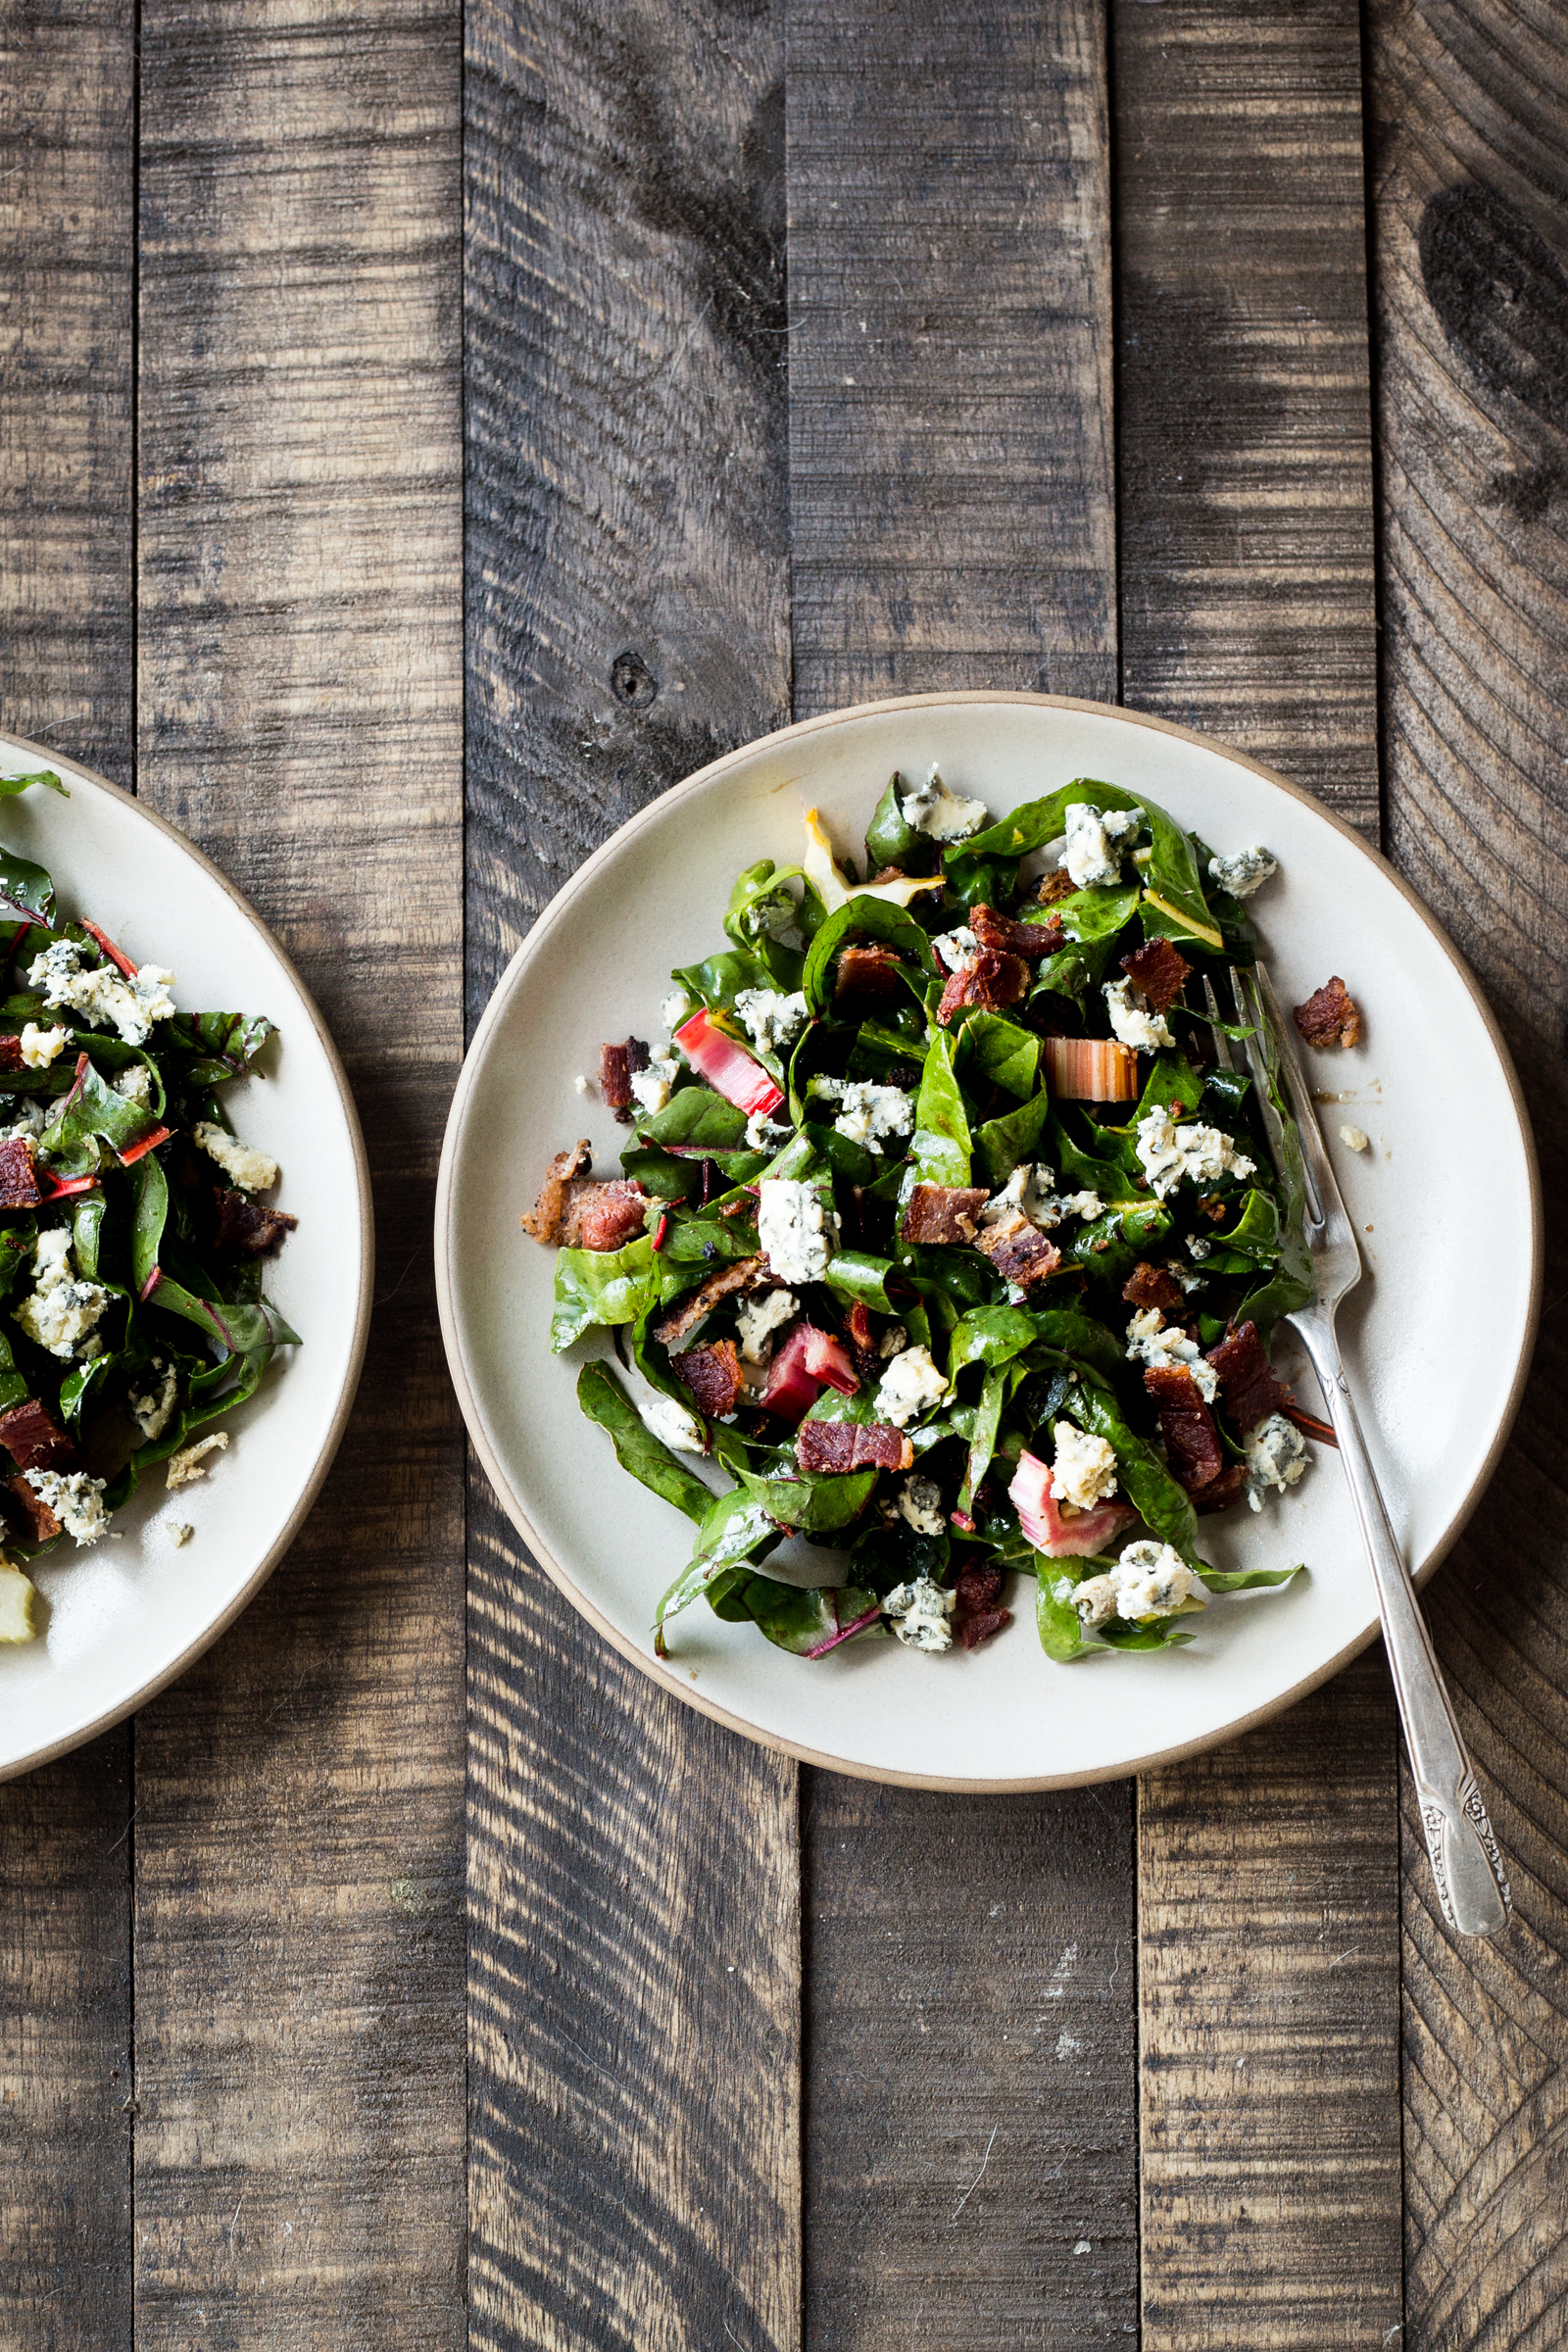 Bacon & Blue Cheese Swiss Chard Salad  (for a veggie version try substituting toasted sunflower seeds sprinkled in smoked paprika and sea salt instead of the bacon)